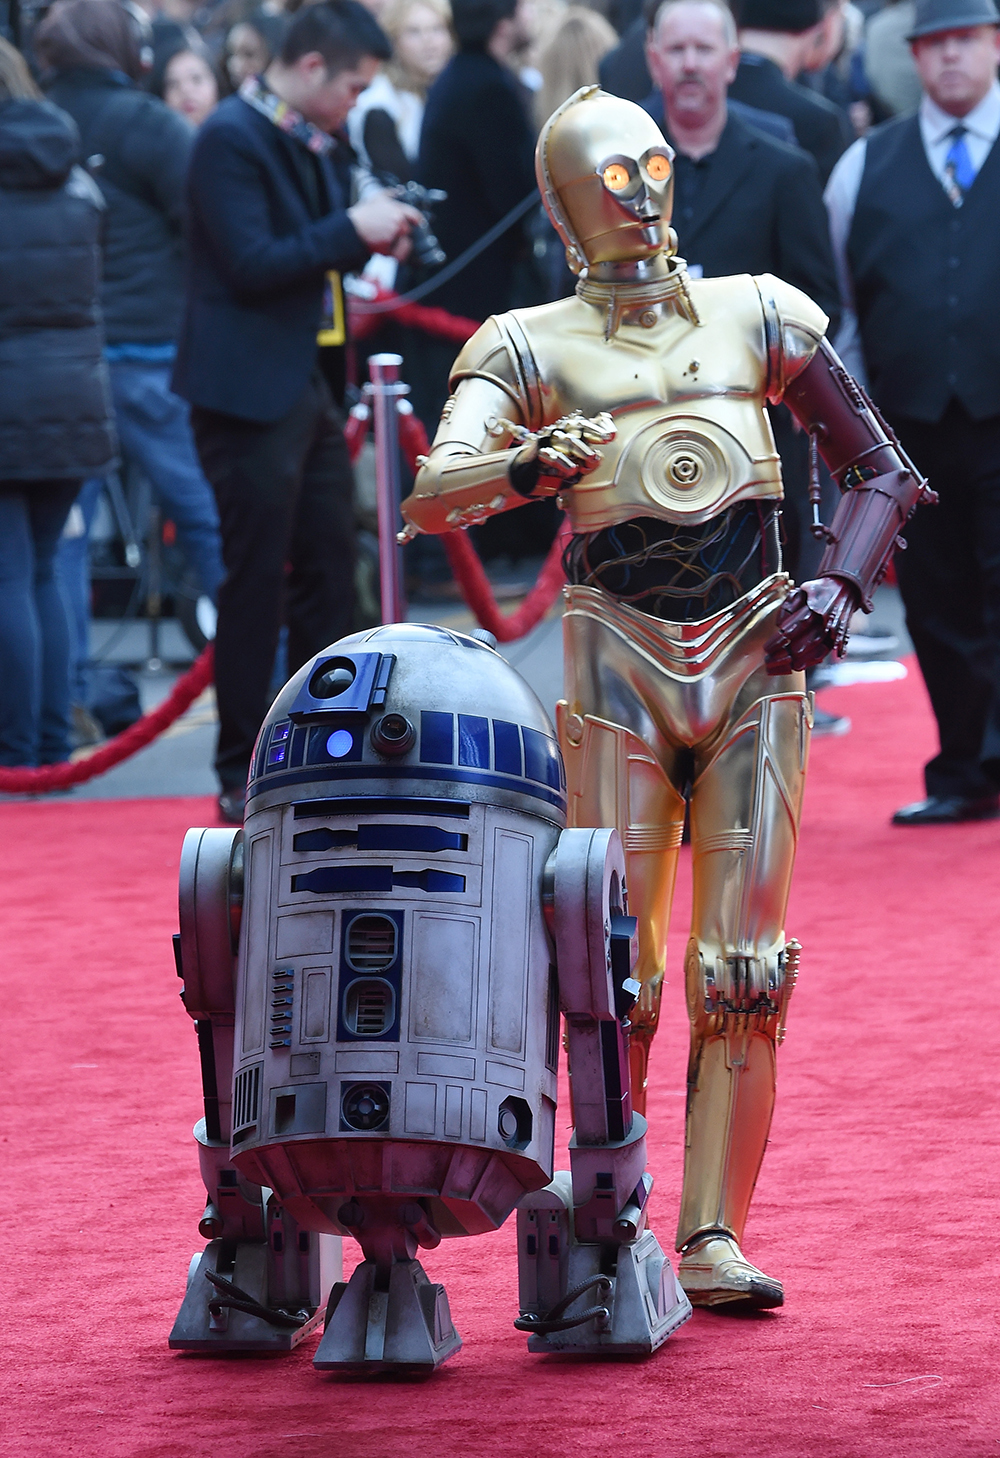 """HOLLYWOOD, CA - DECEMBER 14: R2-D2 (L) and C-3PO characters arrive at the premiere of Walt Disney Pictures and Lucasfilm's """"Star Wars: The Force Awakens"""" at the Dolby Theatre on on December 14, 2015 in Hollywood, California. Ethan Miller/Getty Images/AFP"""